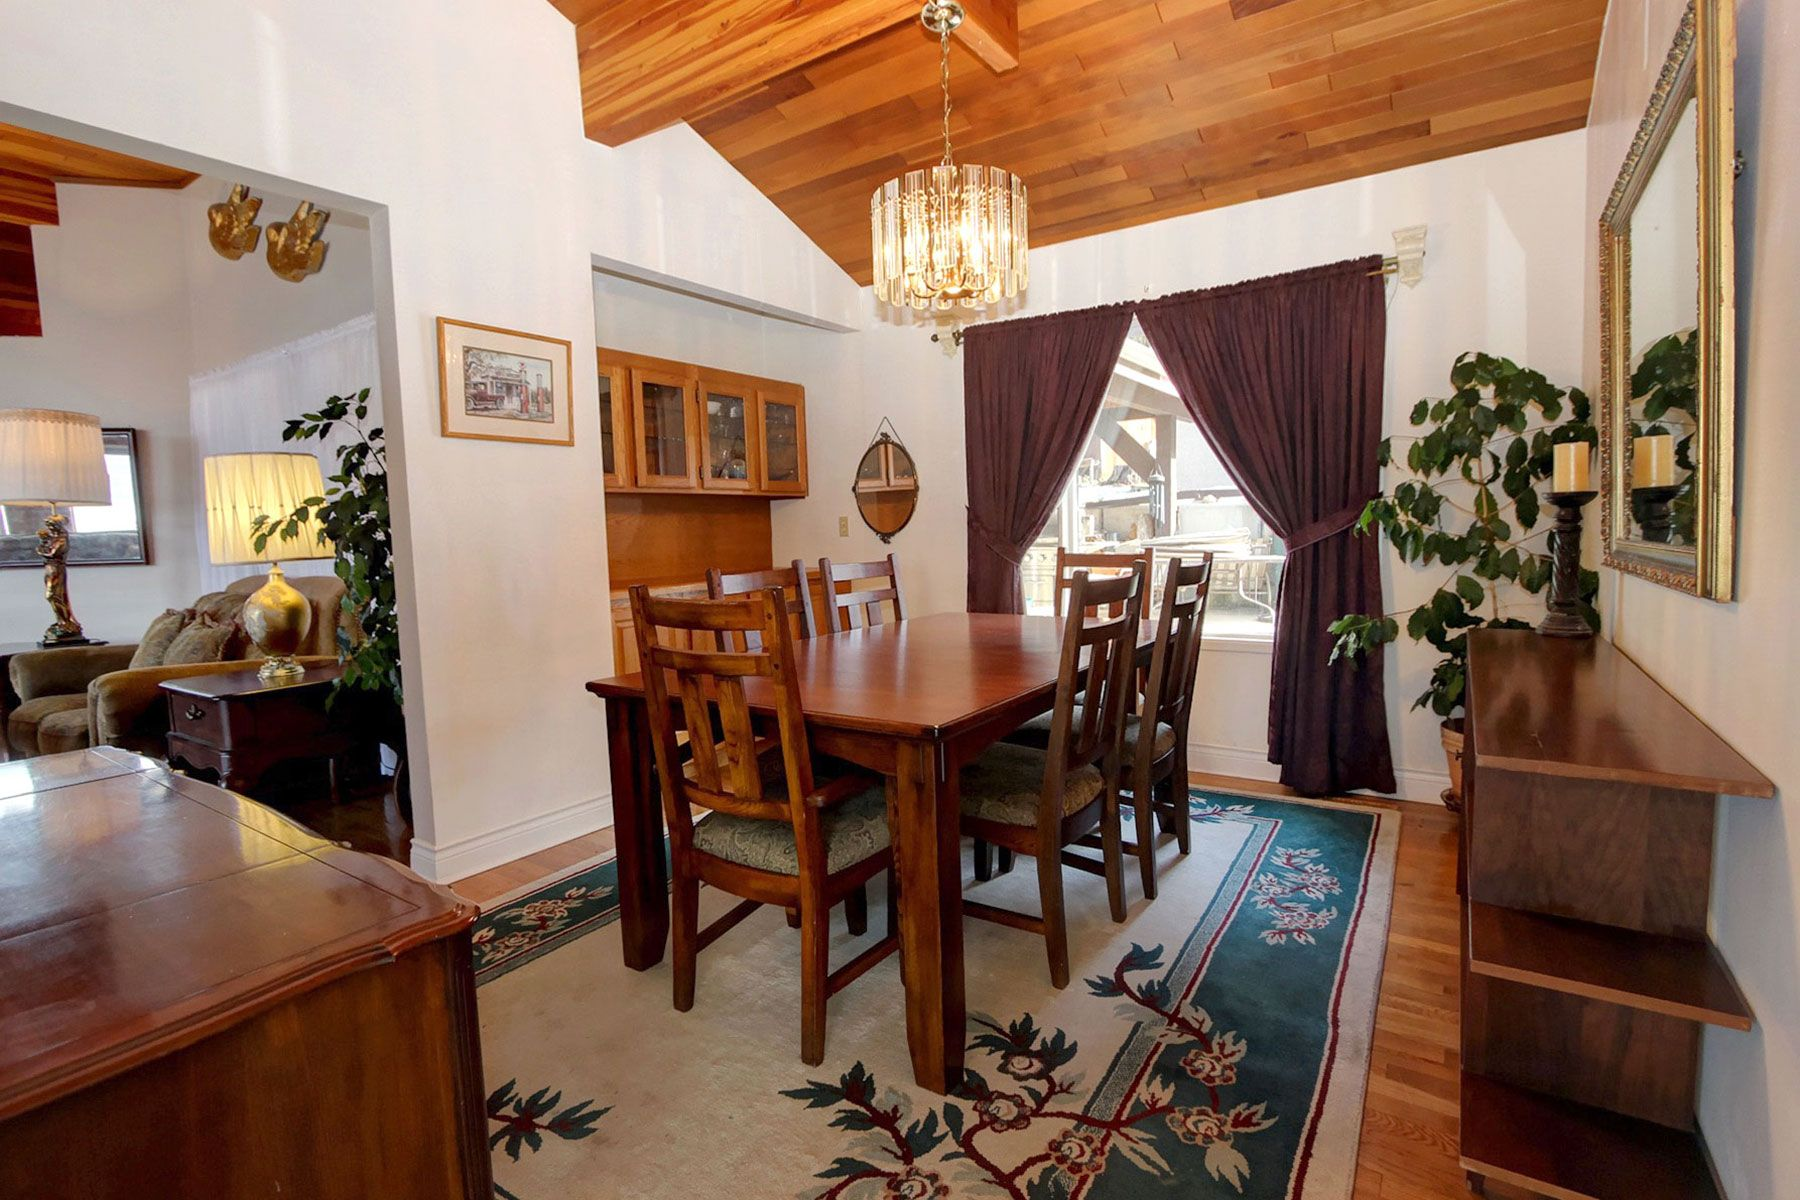 Photo 19: Photos: 1350 Trans Canada Highway in Sorrento: House for sale : MLS®# 10225818